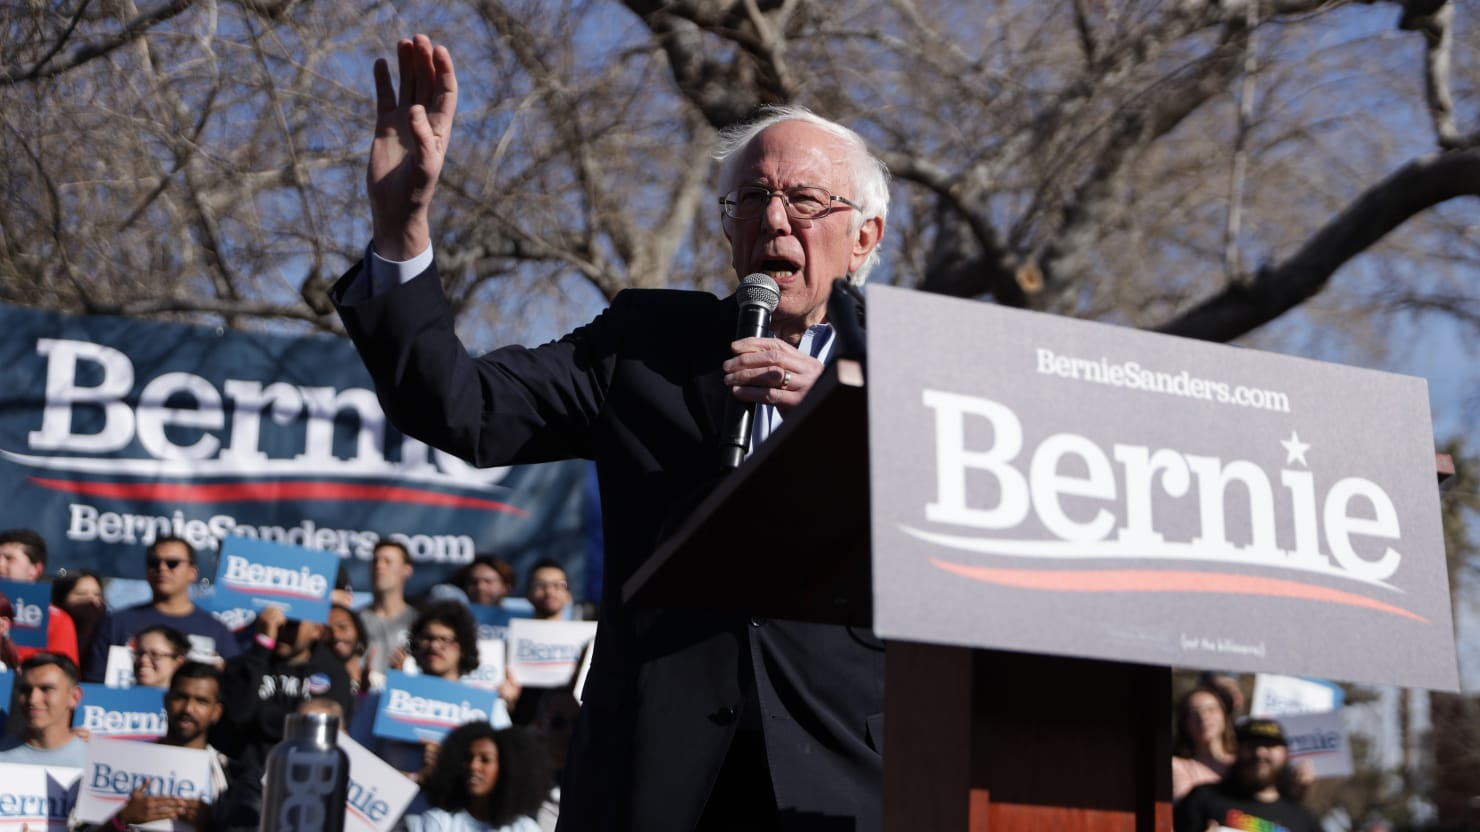 Bernie Sanders: I Won't Be Releasing Any More Medical Records